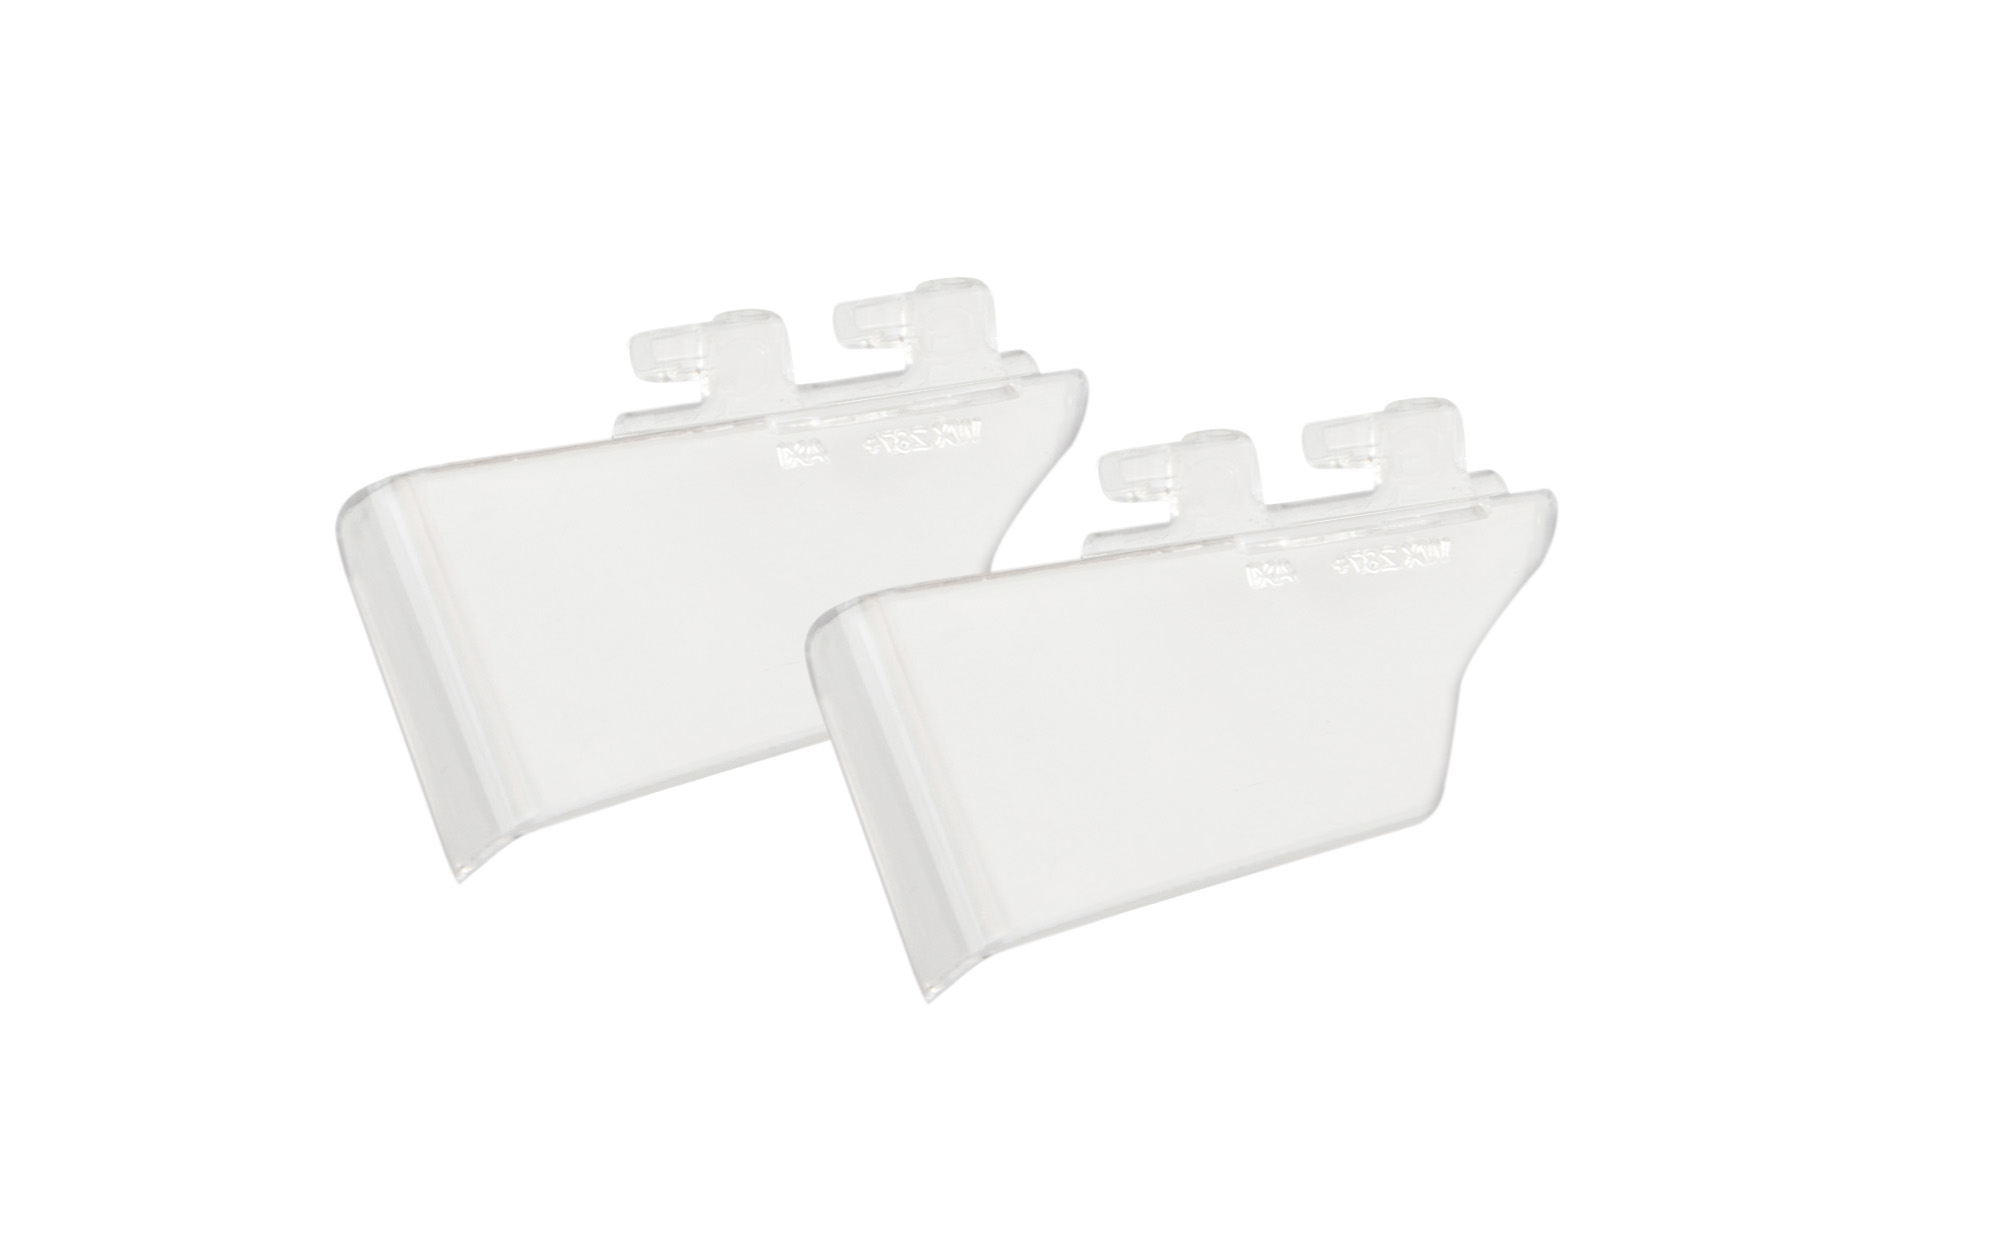 WX Serenity Side Shields Image